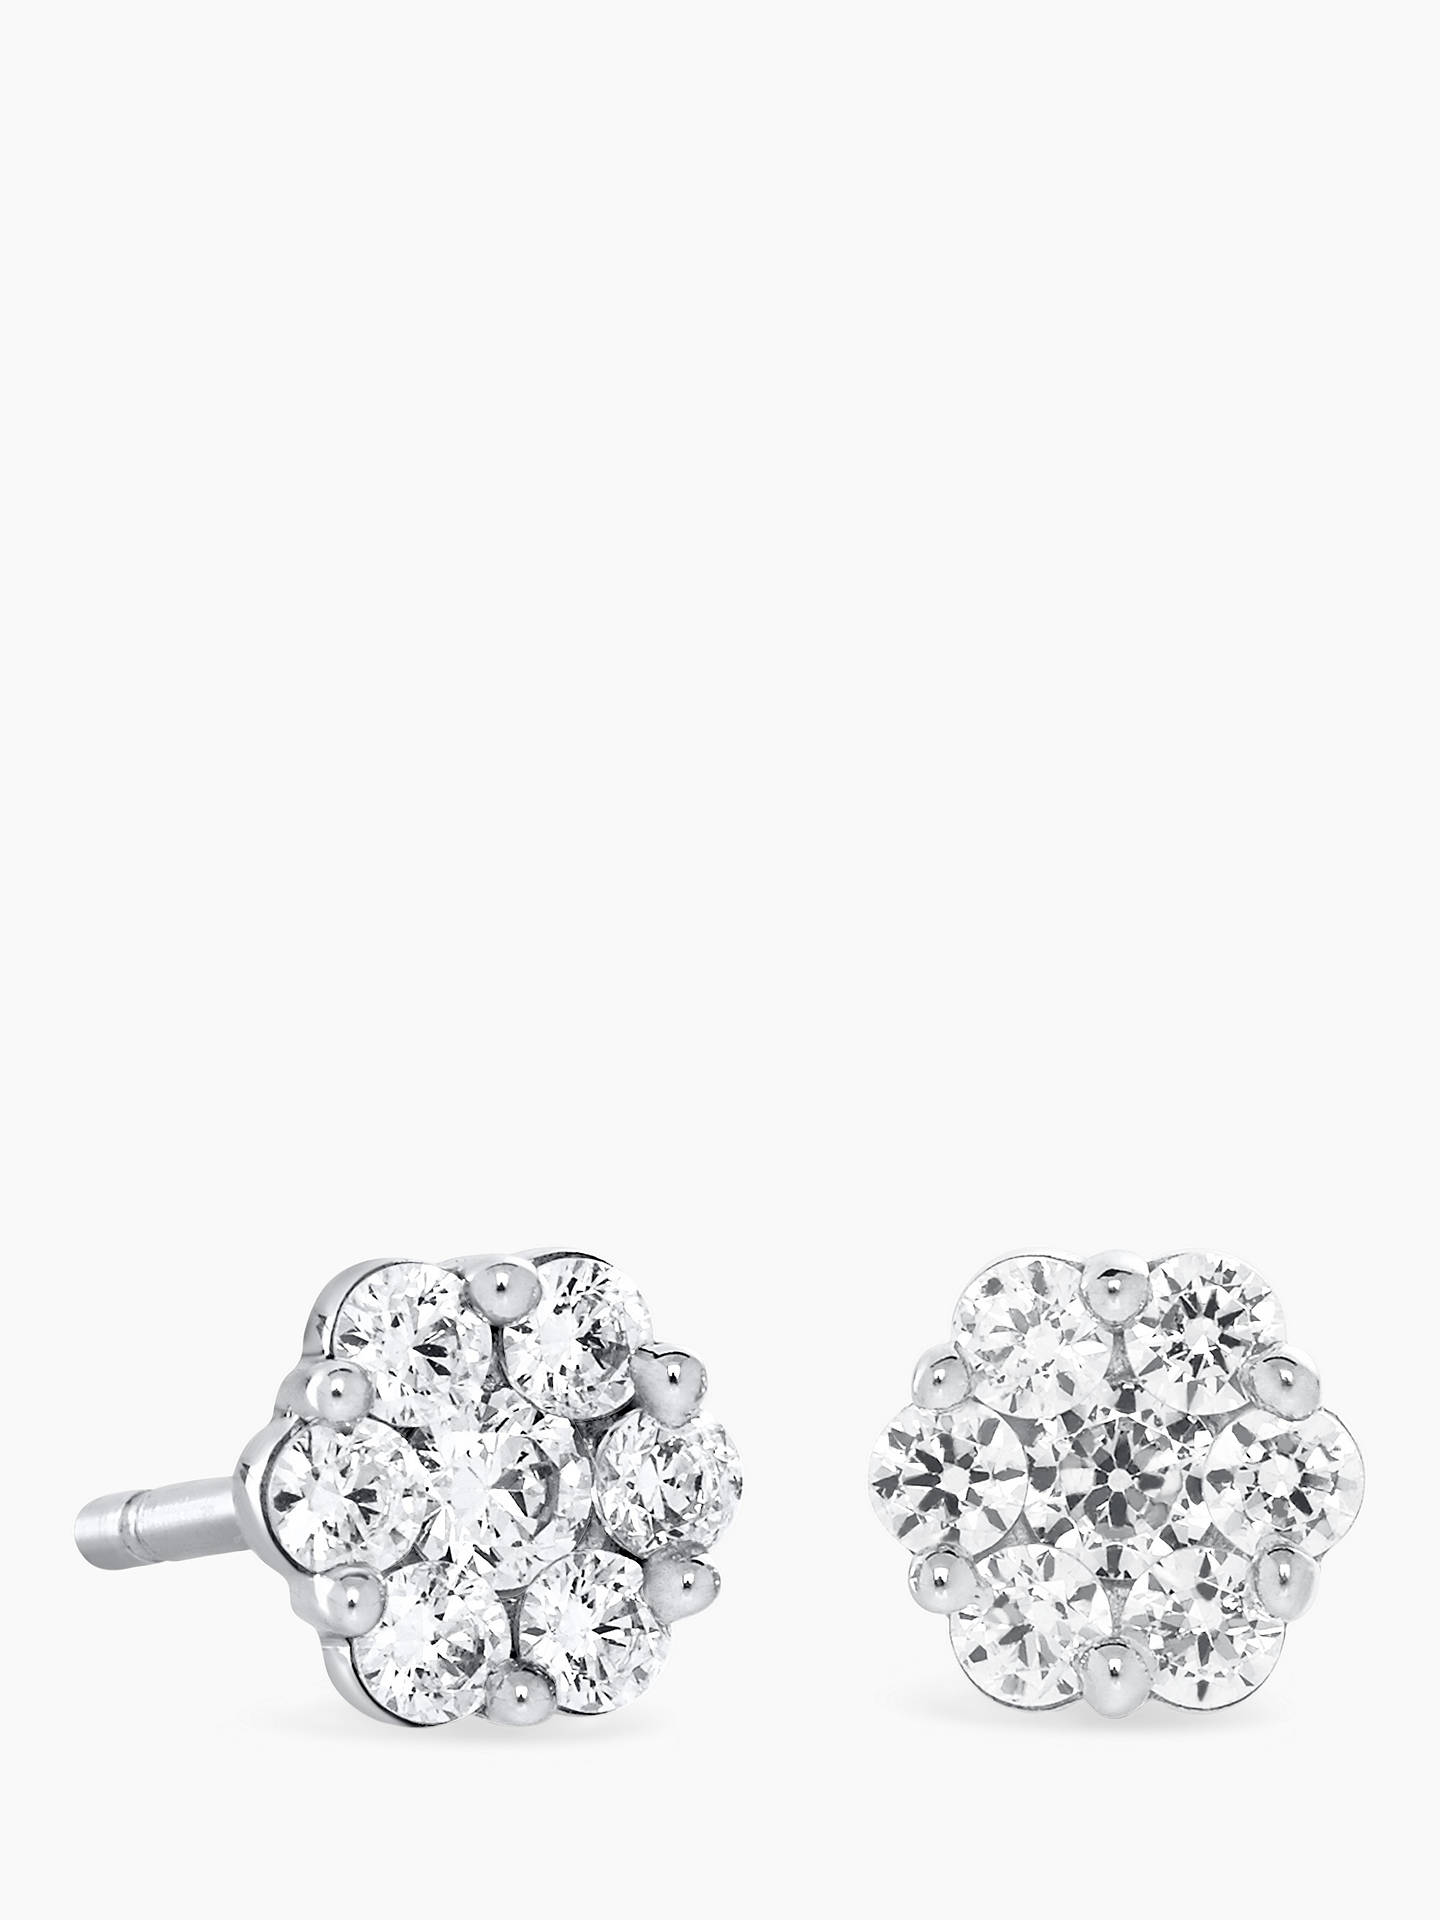 BuyBrown & Newirth 18ct White Gold Diamond Flower Stud Earrings, 0.40ct Online at johnlewis.com